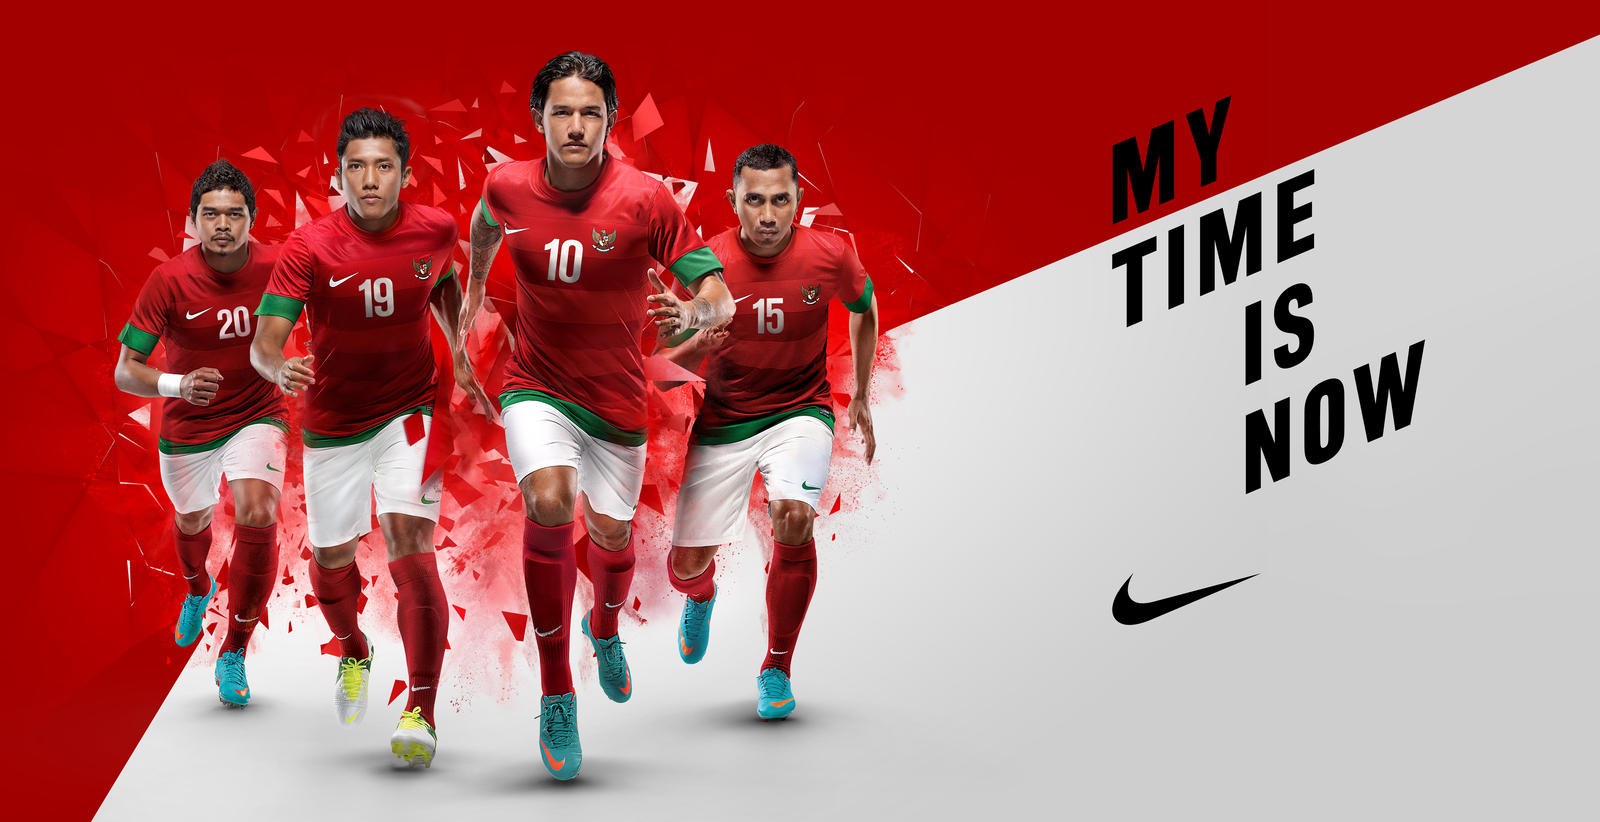 Indonesia National Team To Debut New Nike Team Kit At